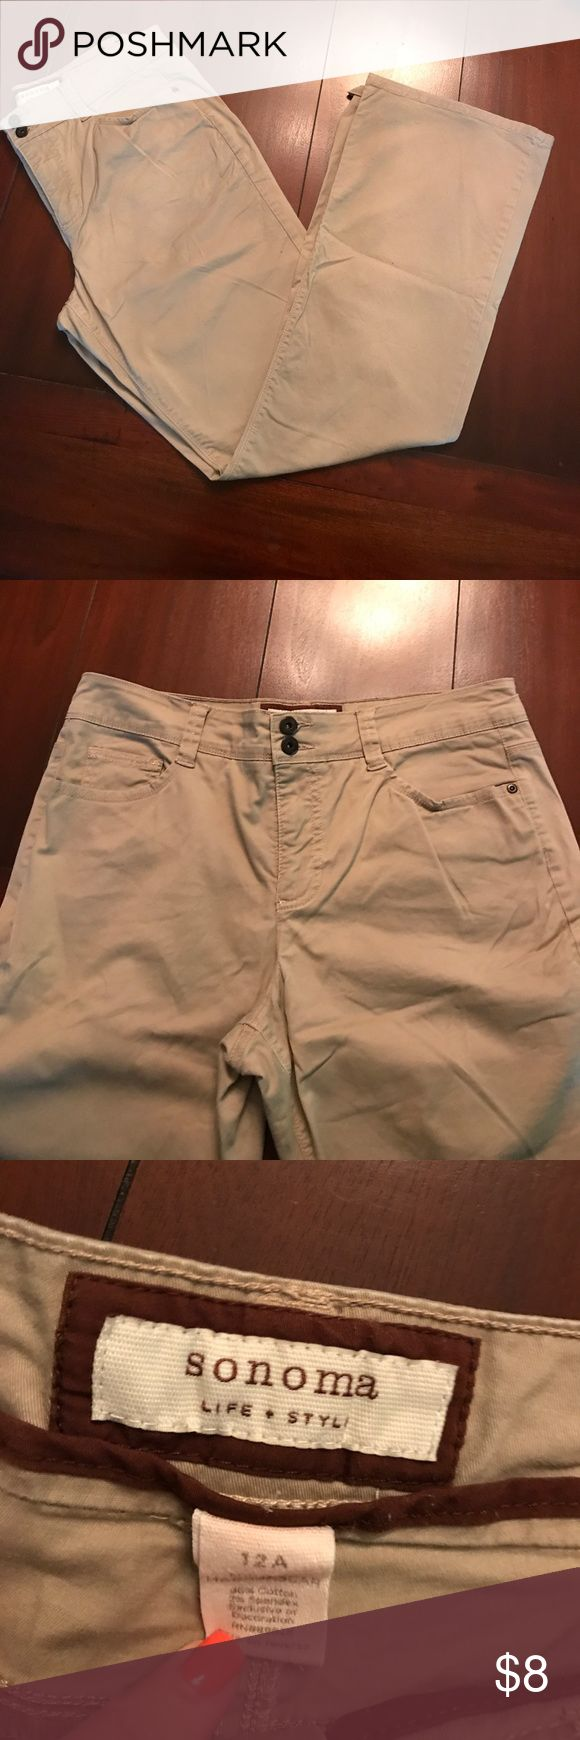 Khaki pants size 12 juniors Great condition! Just don't fit me anymore Jeans